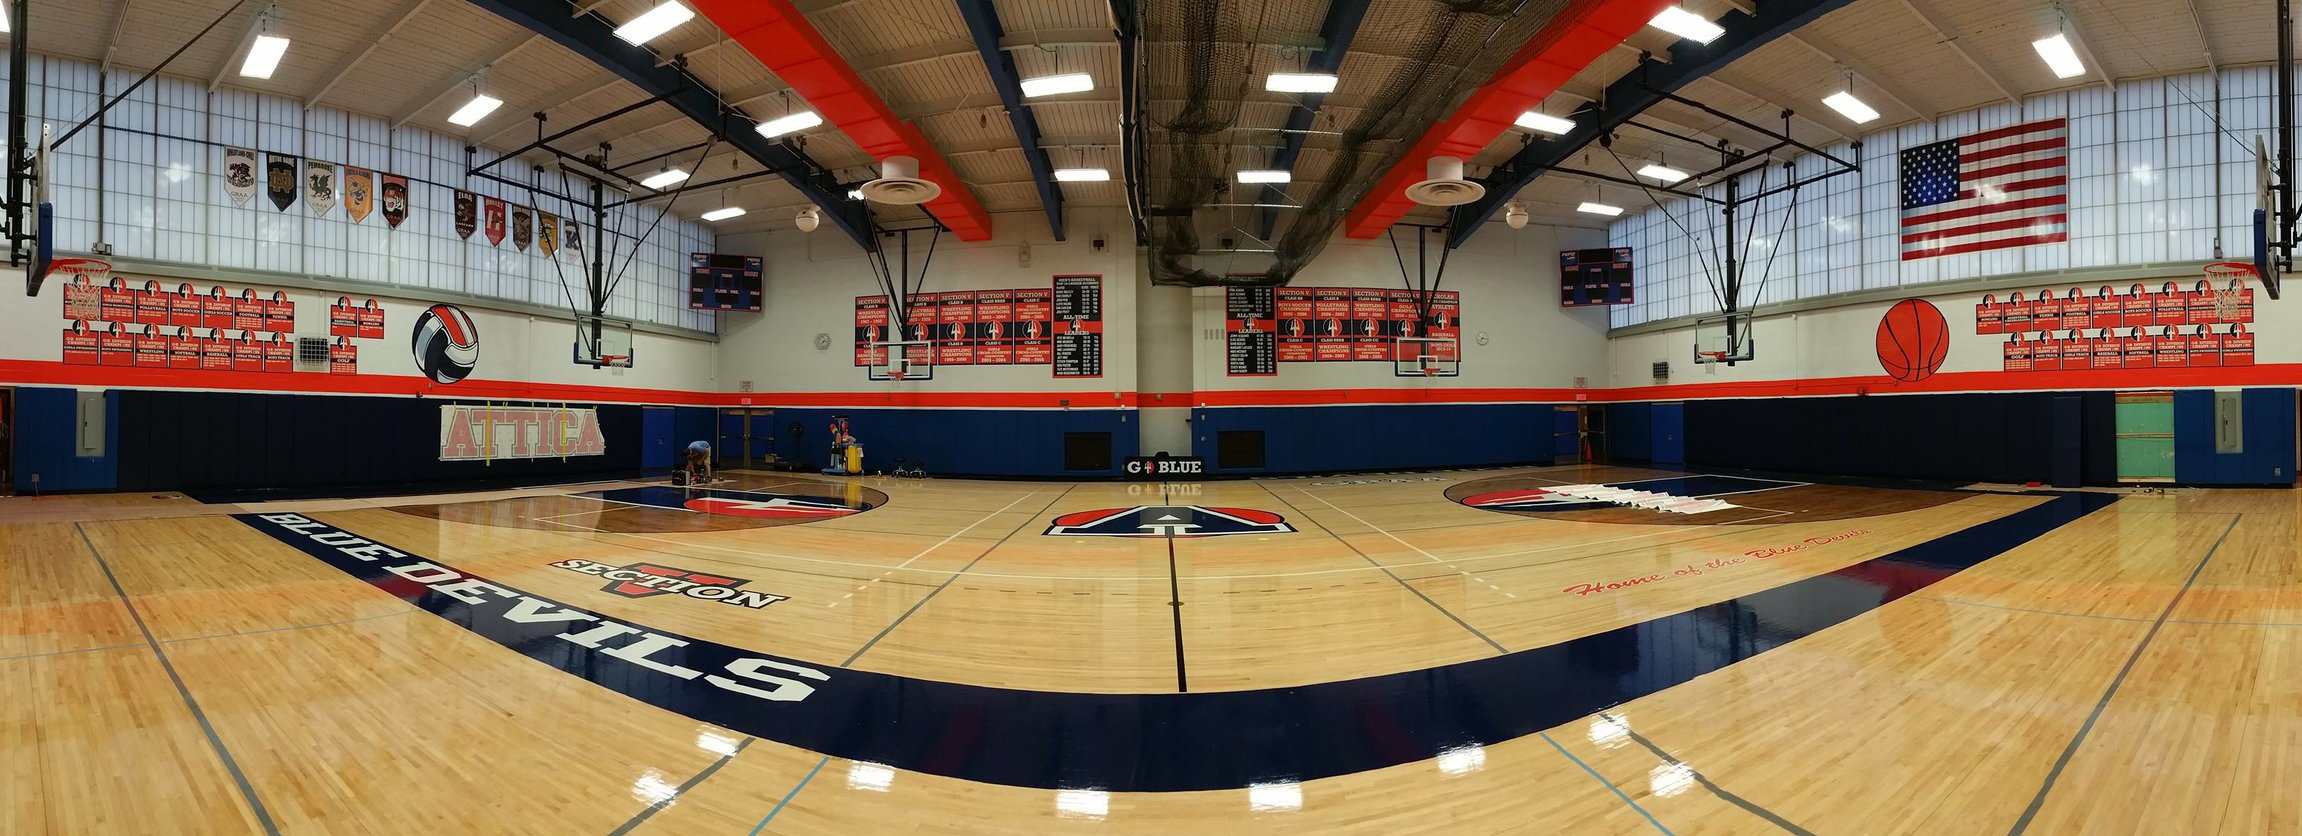 Attica Central School District - Gymnasium Rebrand and Changeover